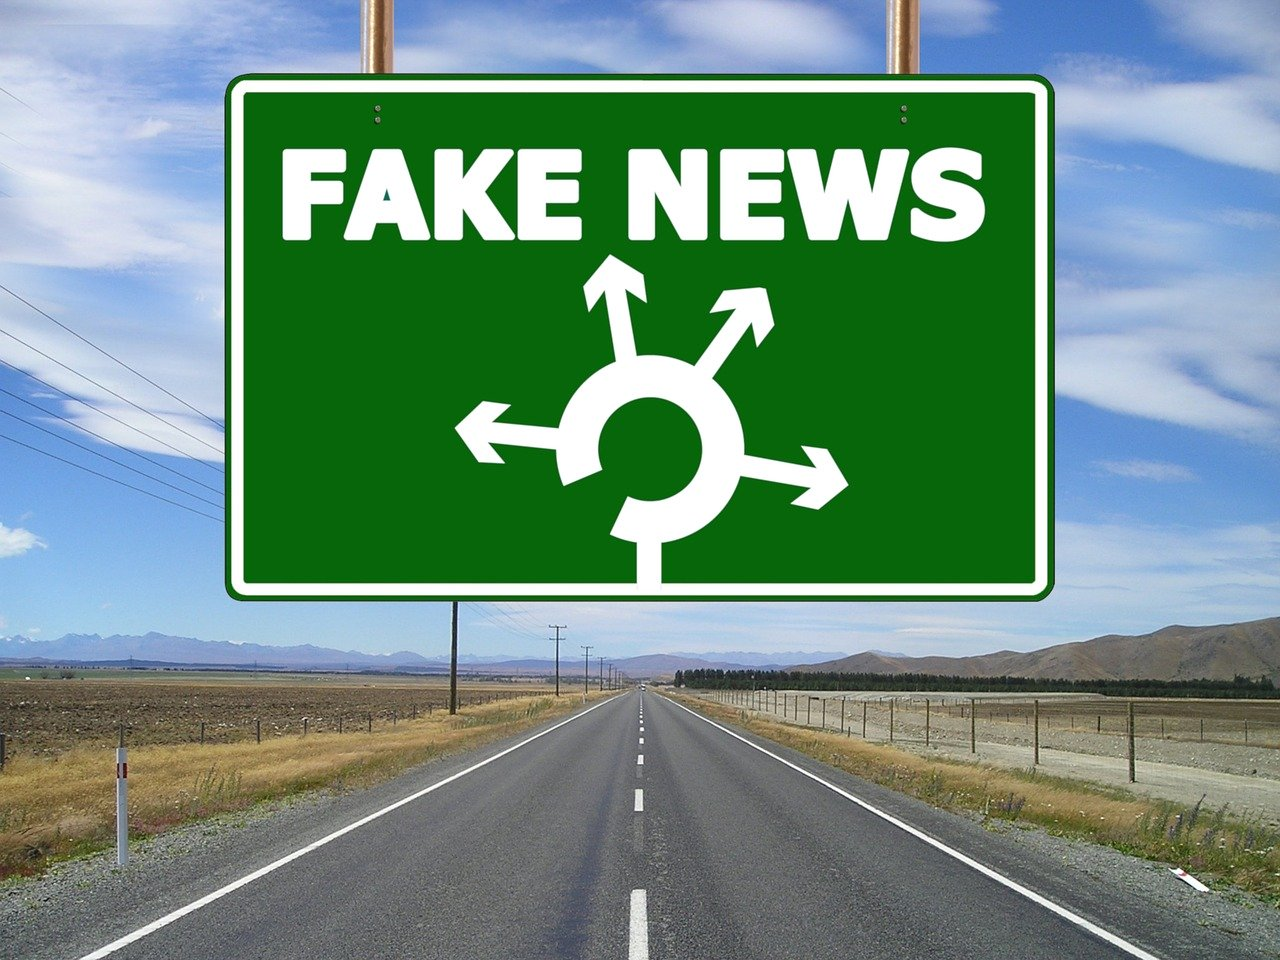 "Fake News - ""New Hacker on Facebook Offensive Phrase Between Comments"" is a Prank or Hoax - Do Not Share"